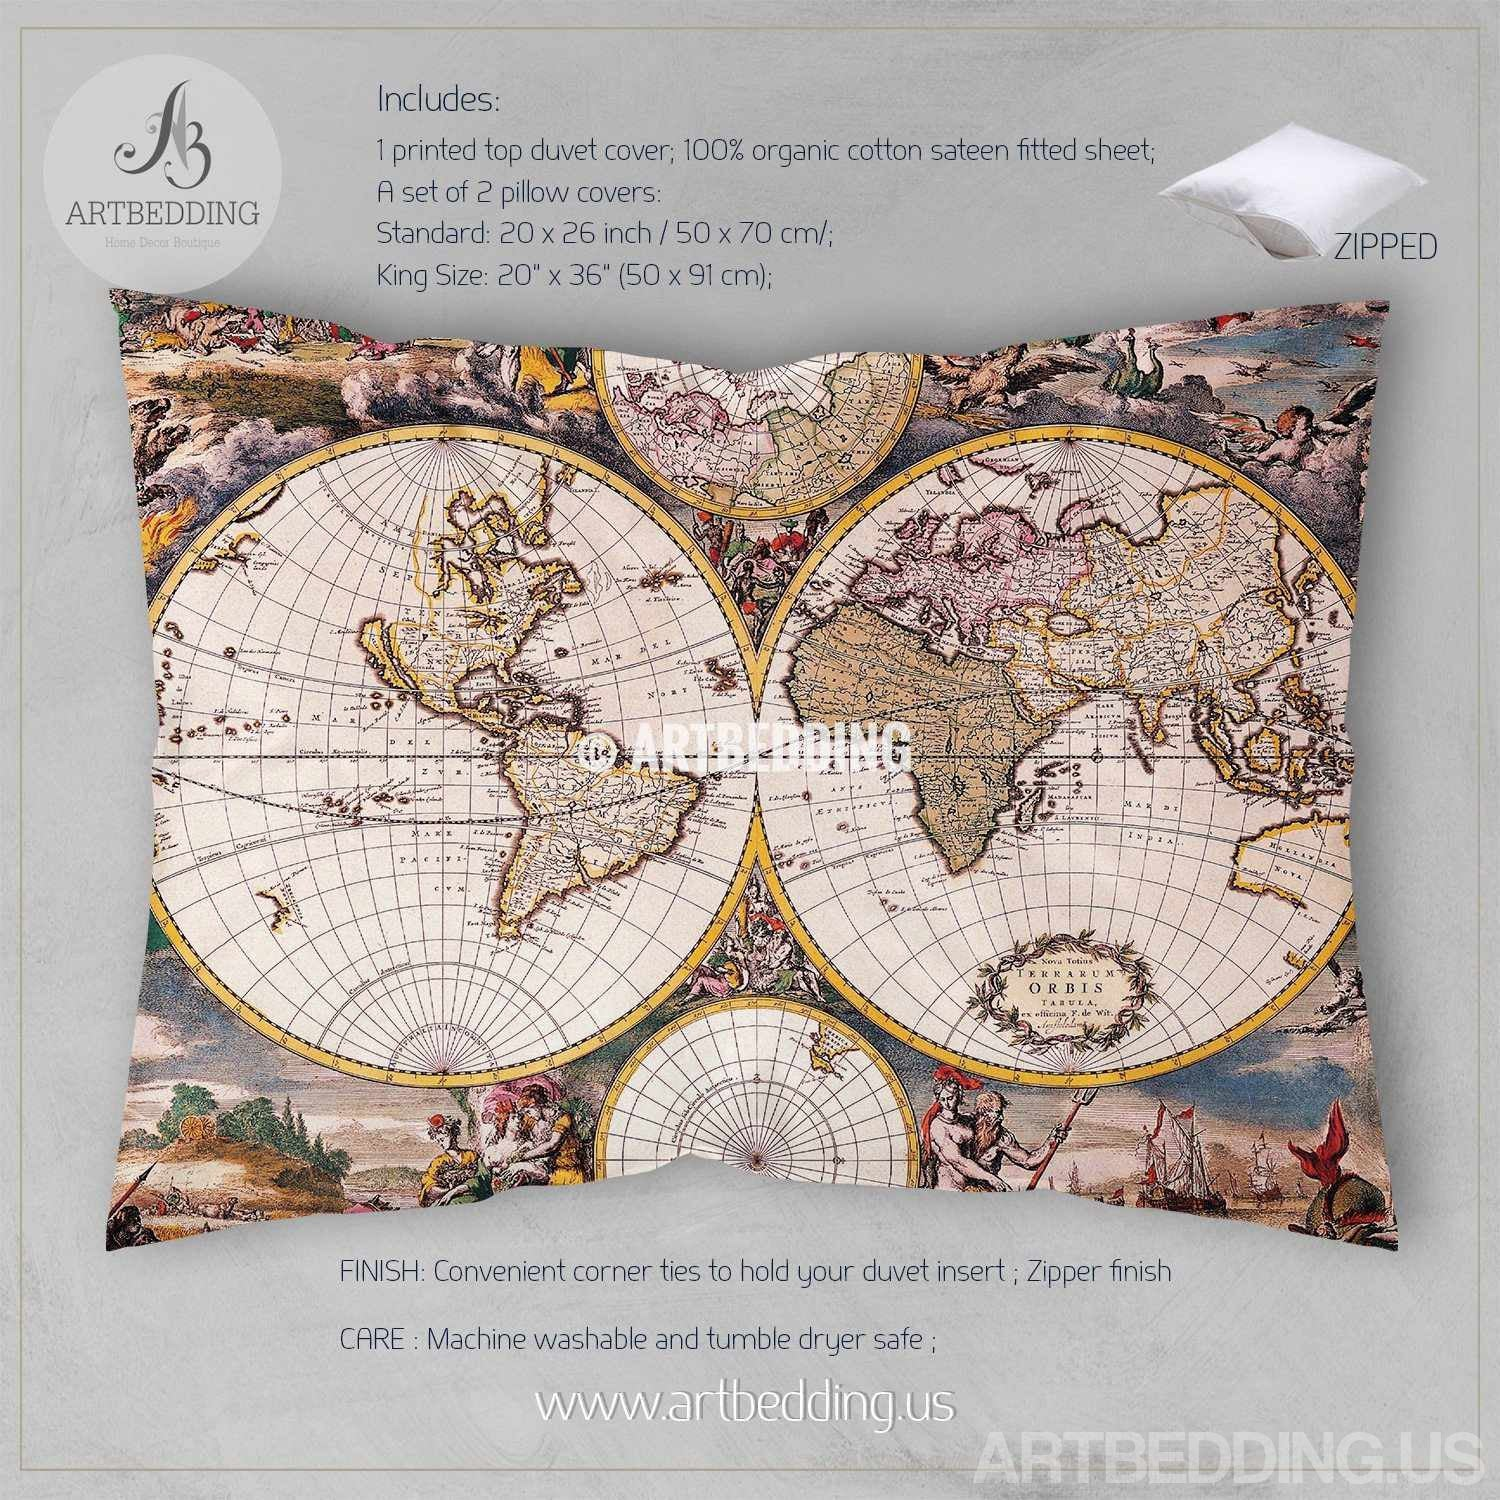 Old world map bedding vintage 18th century hemisphere illustration vintage map bedding vintage old map duvet cover antique map queen king old world gumiabroncs Image collections